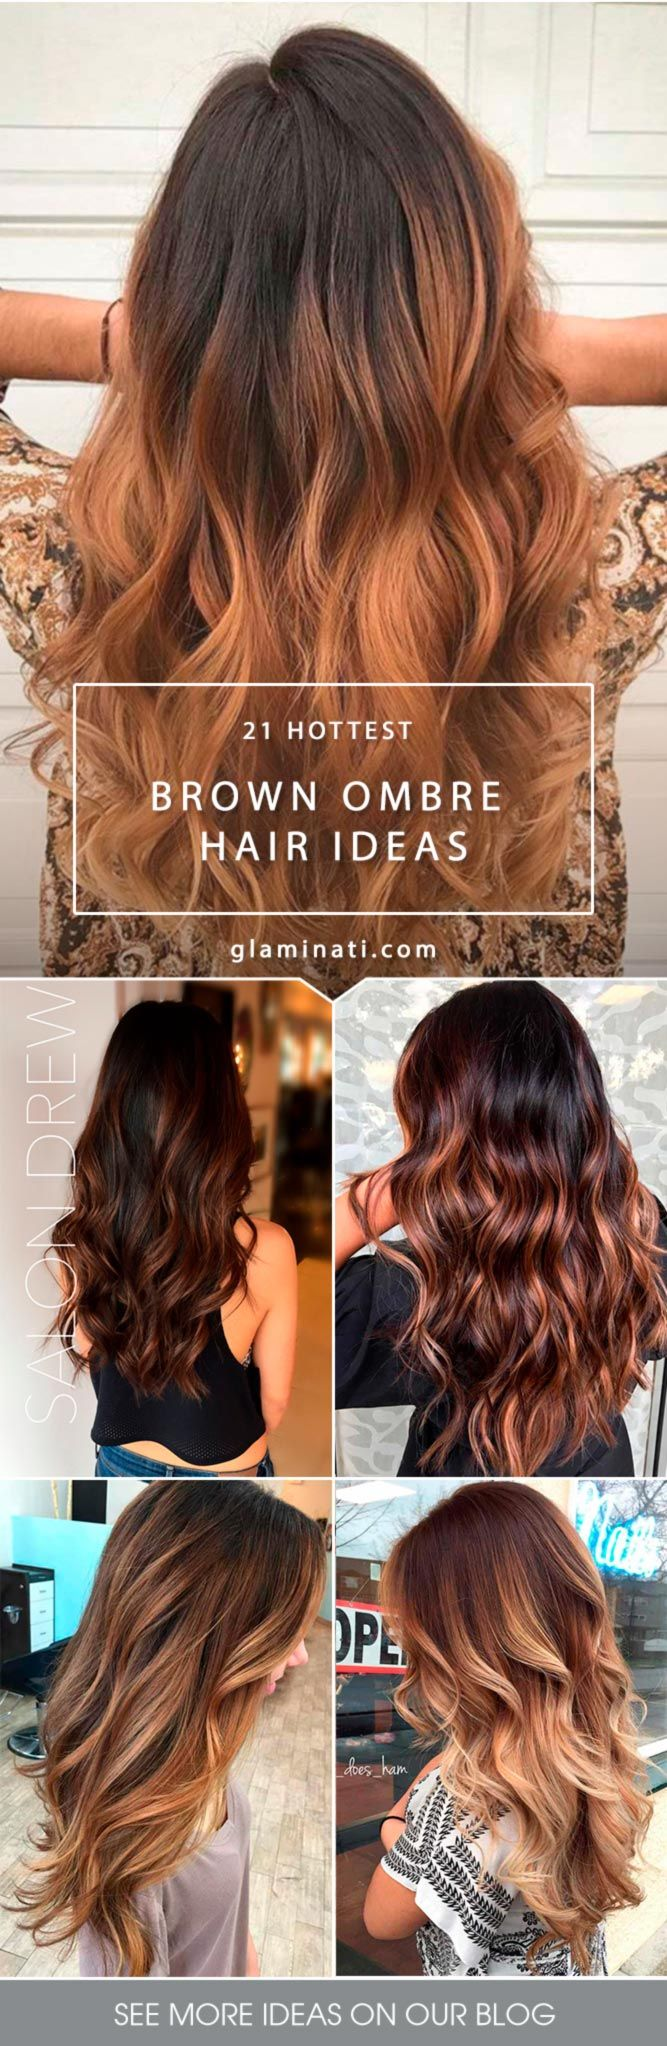 43 Hottest Brown Ombre Hair Ideas Fringe And All Pinterest